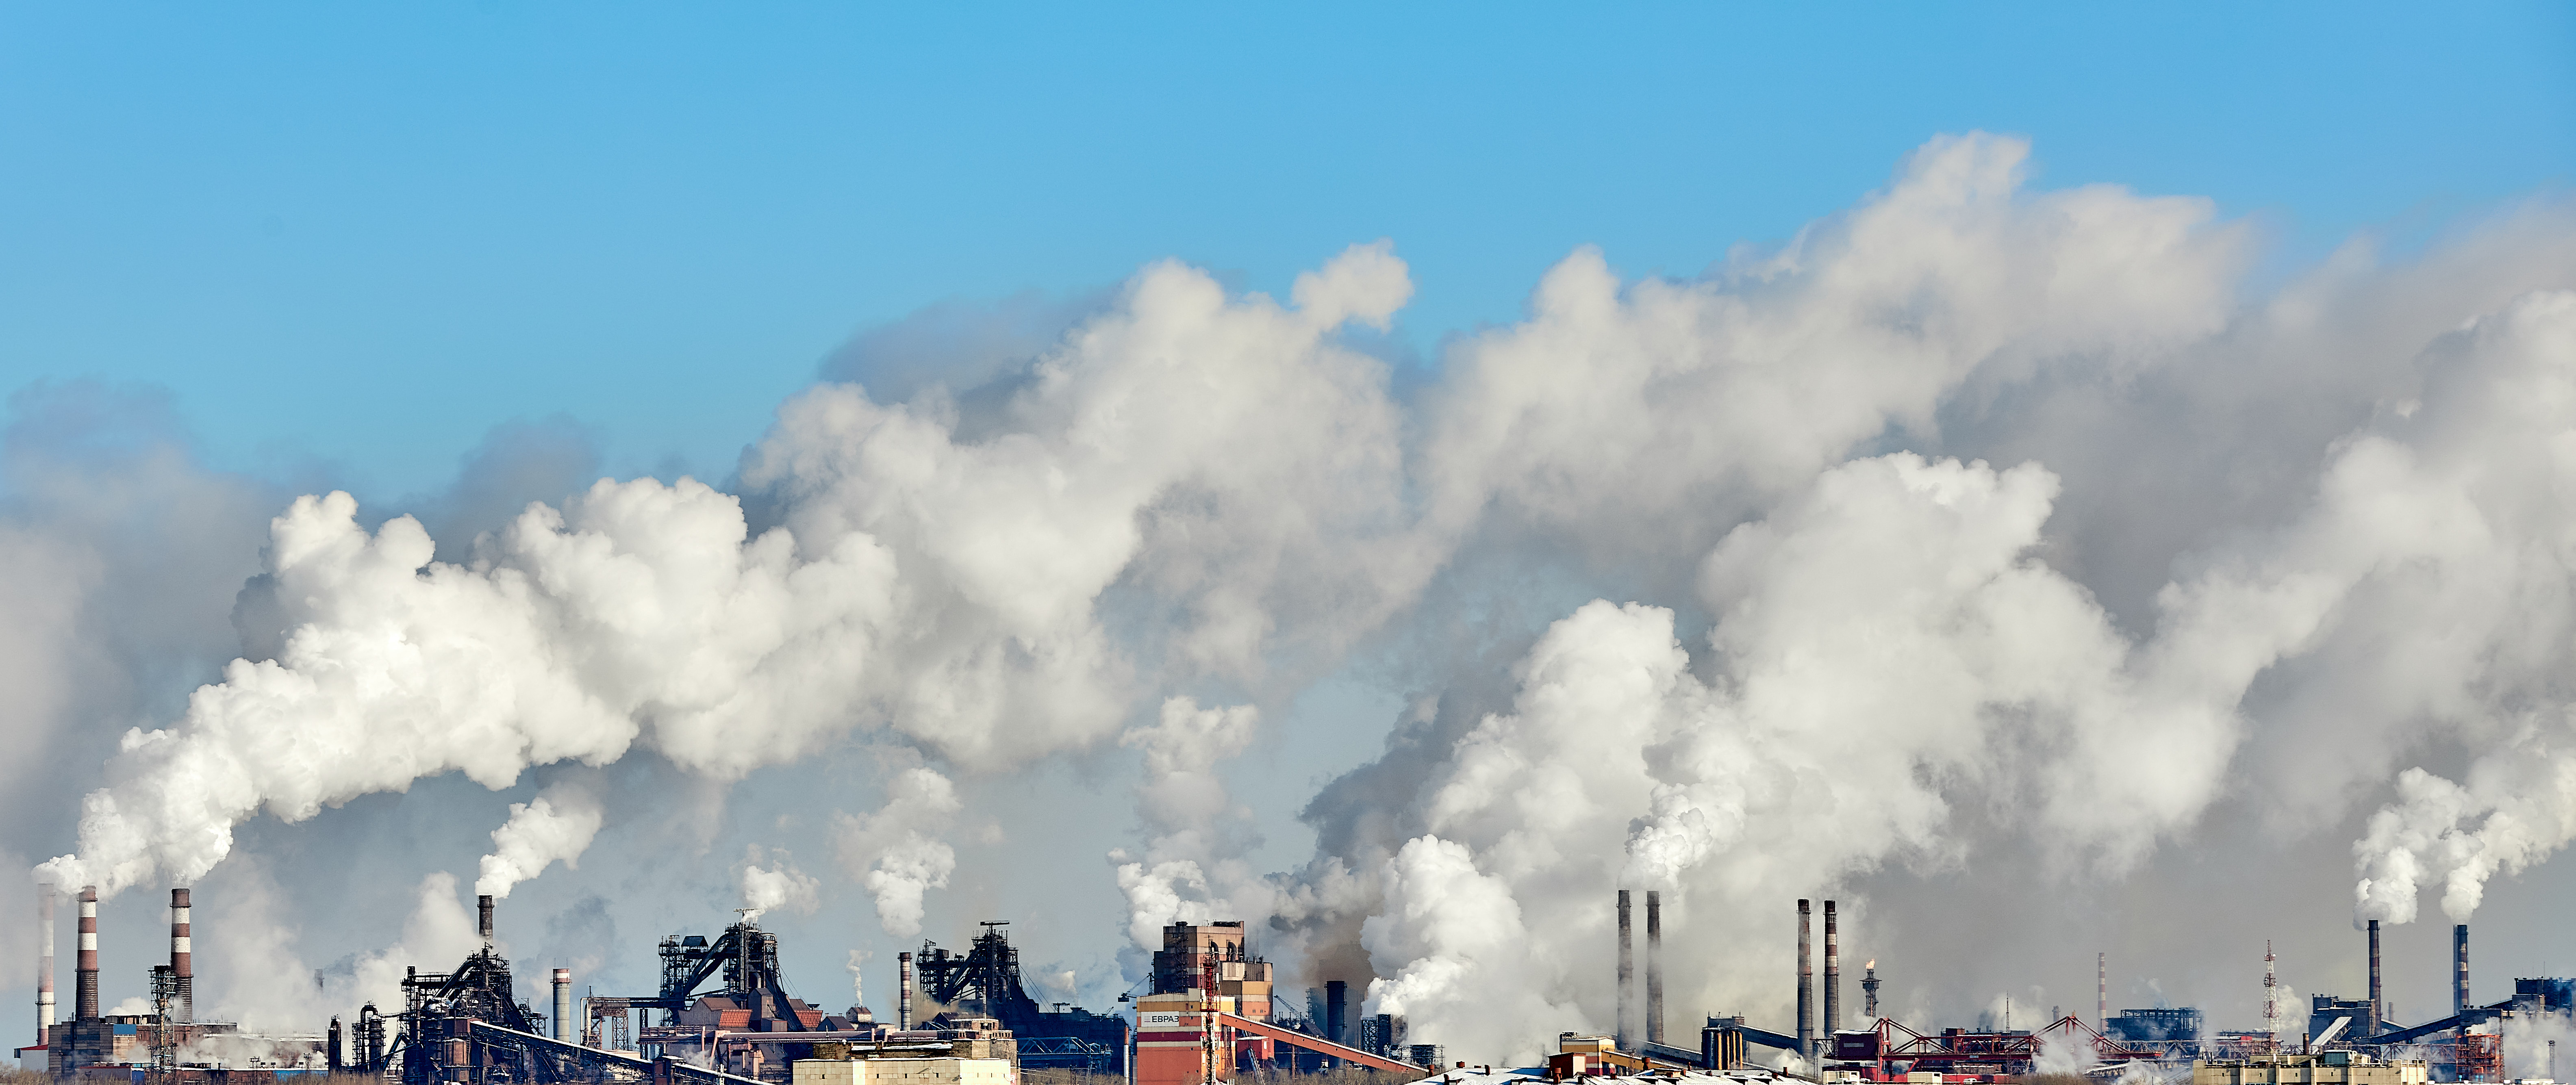 How Air Quality Data Can Help With Better Insurance Underwriting